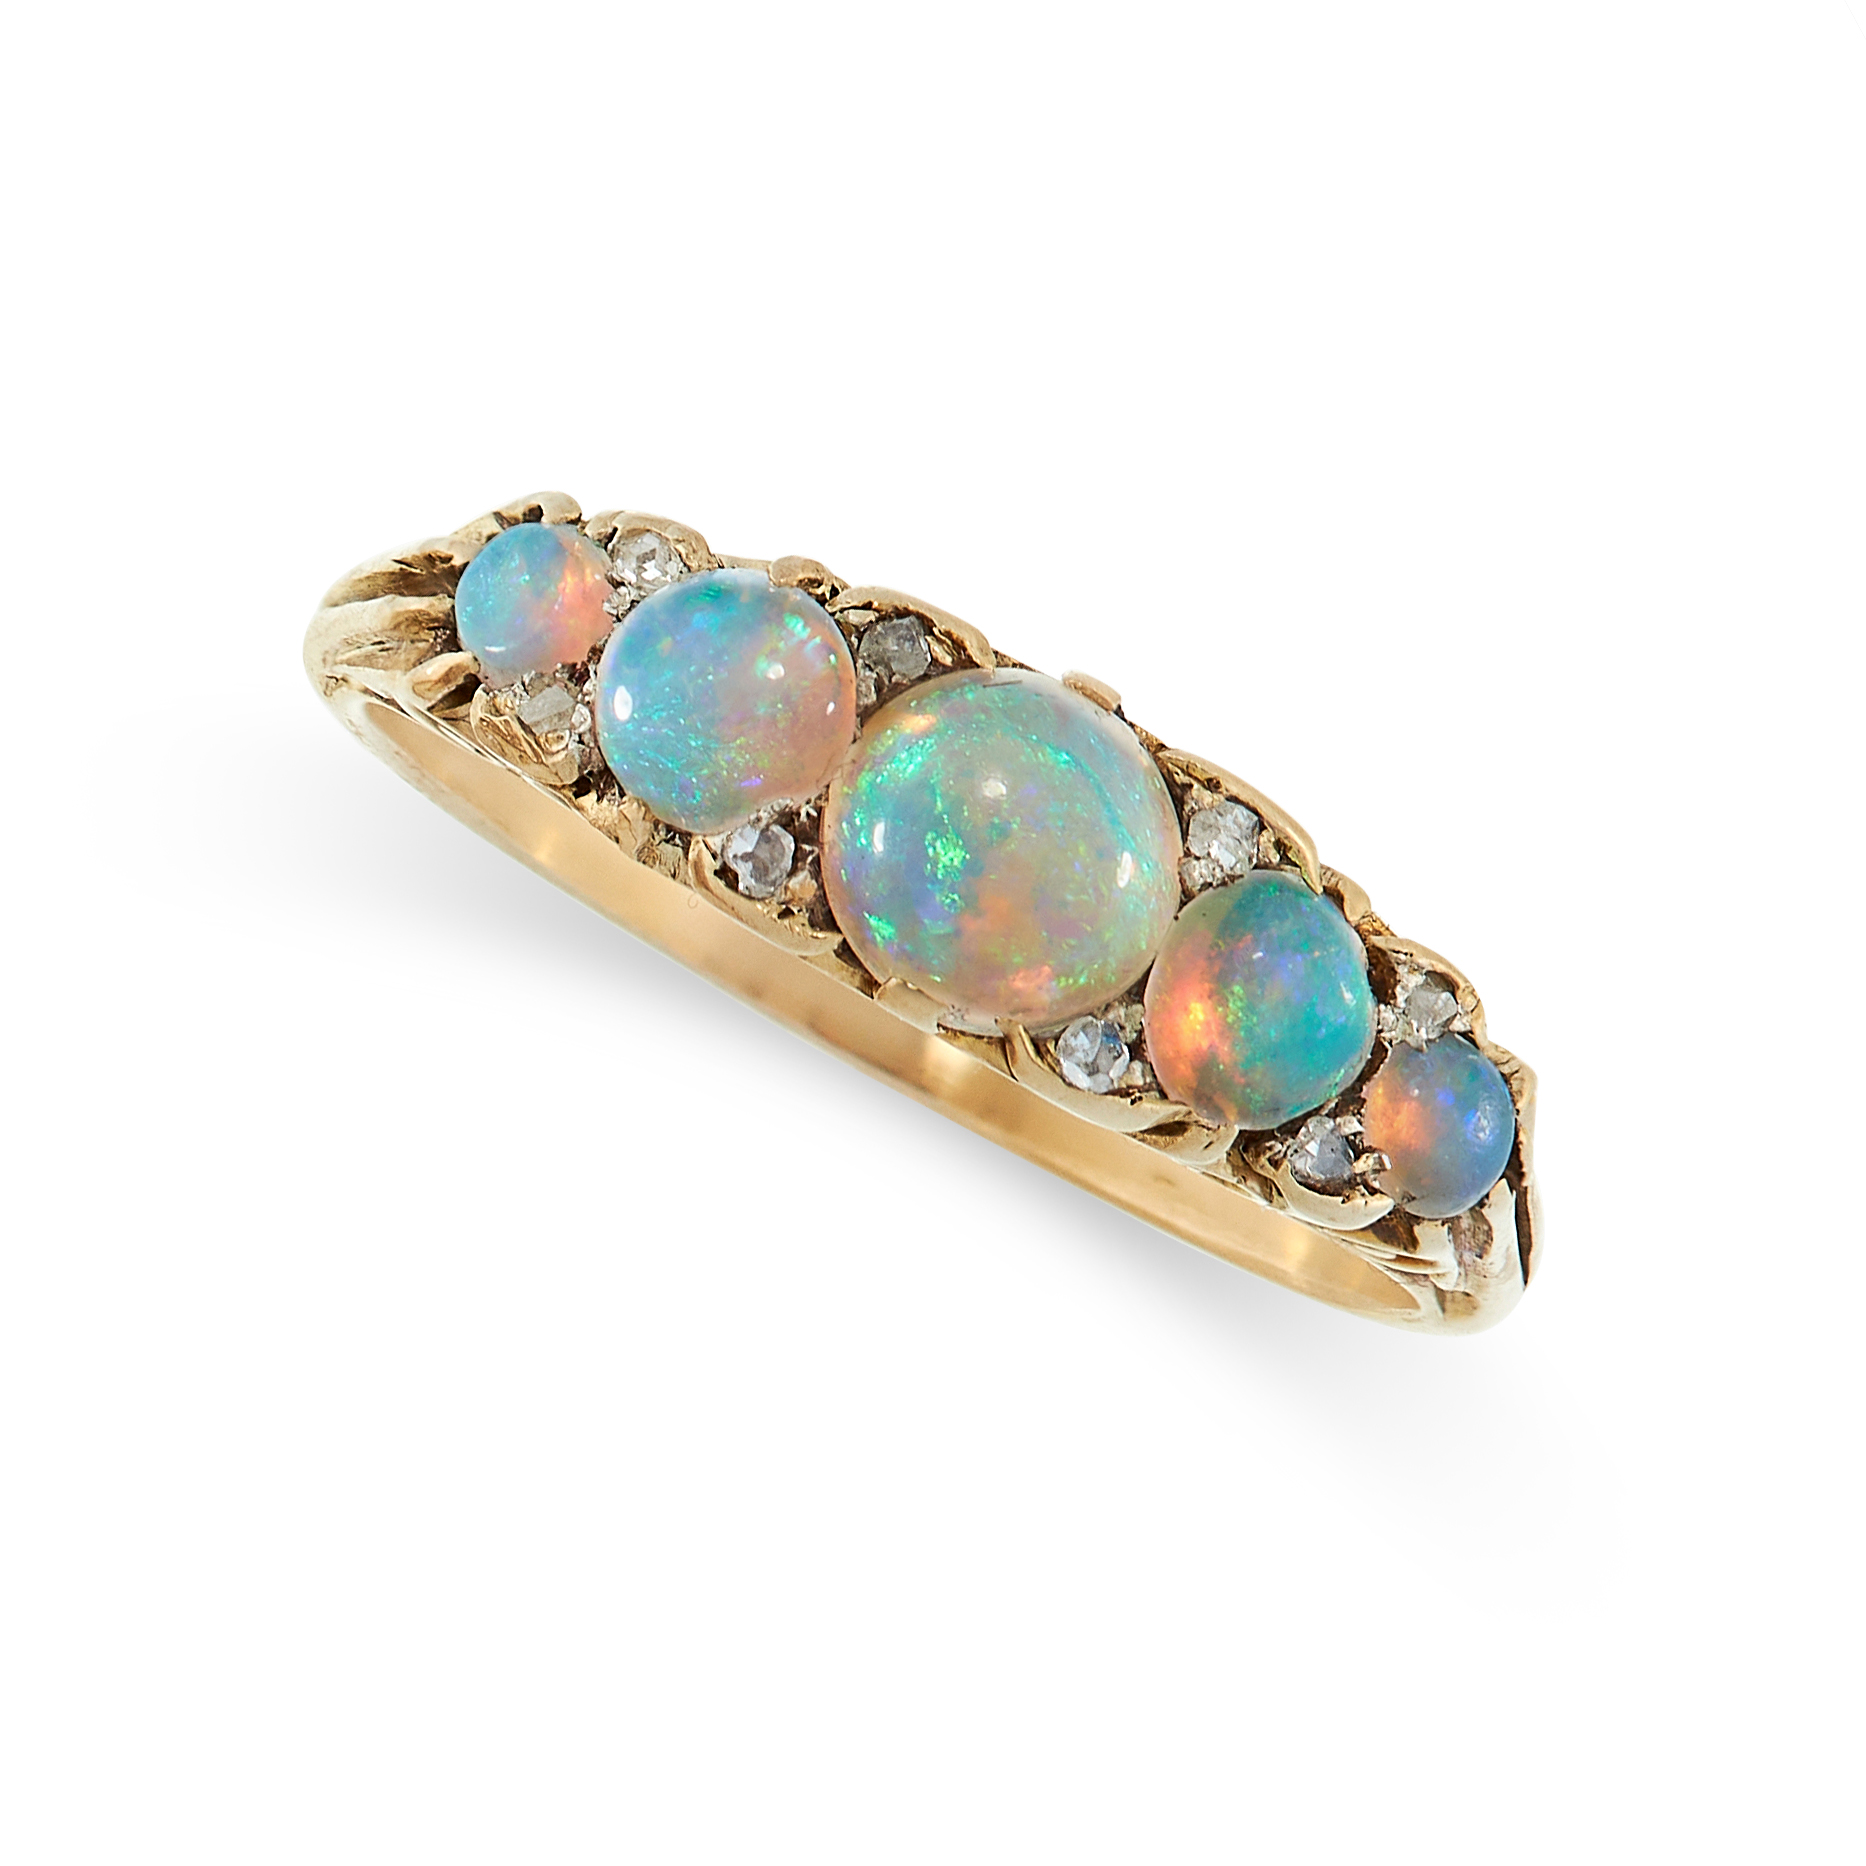 ANTIQUE OPAL AND DIAMOND RING in yellow gold, comprising of five cabochon opals accented by rose cut